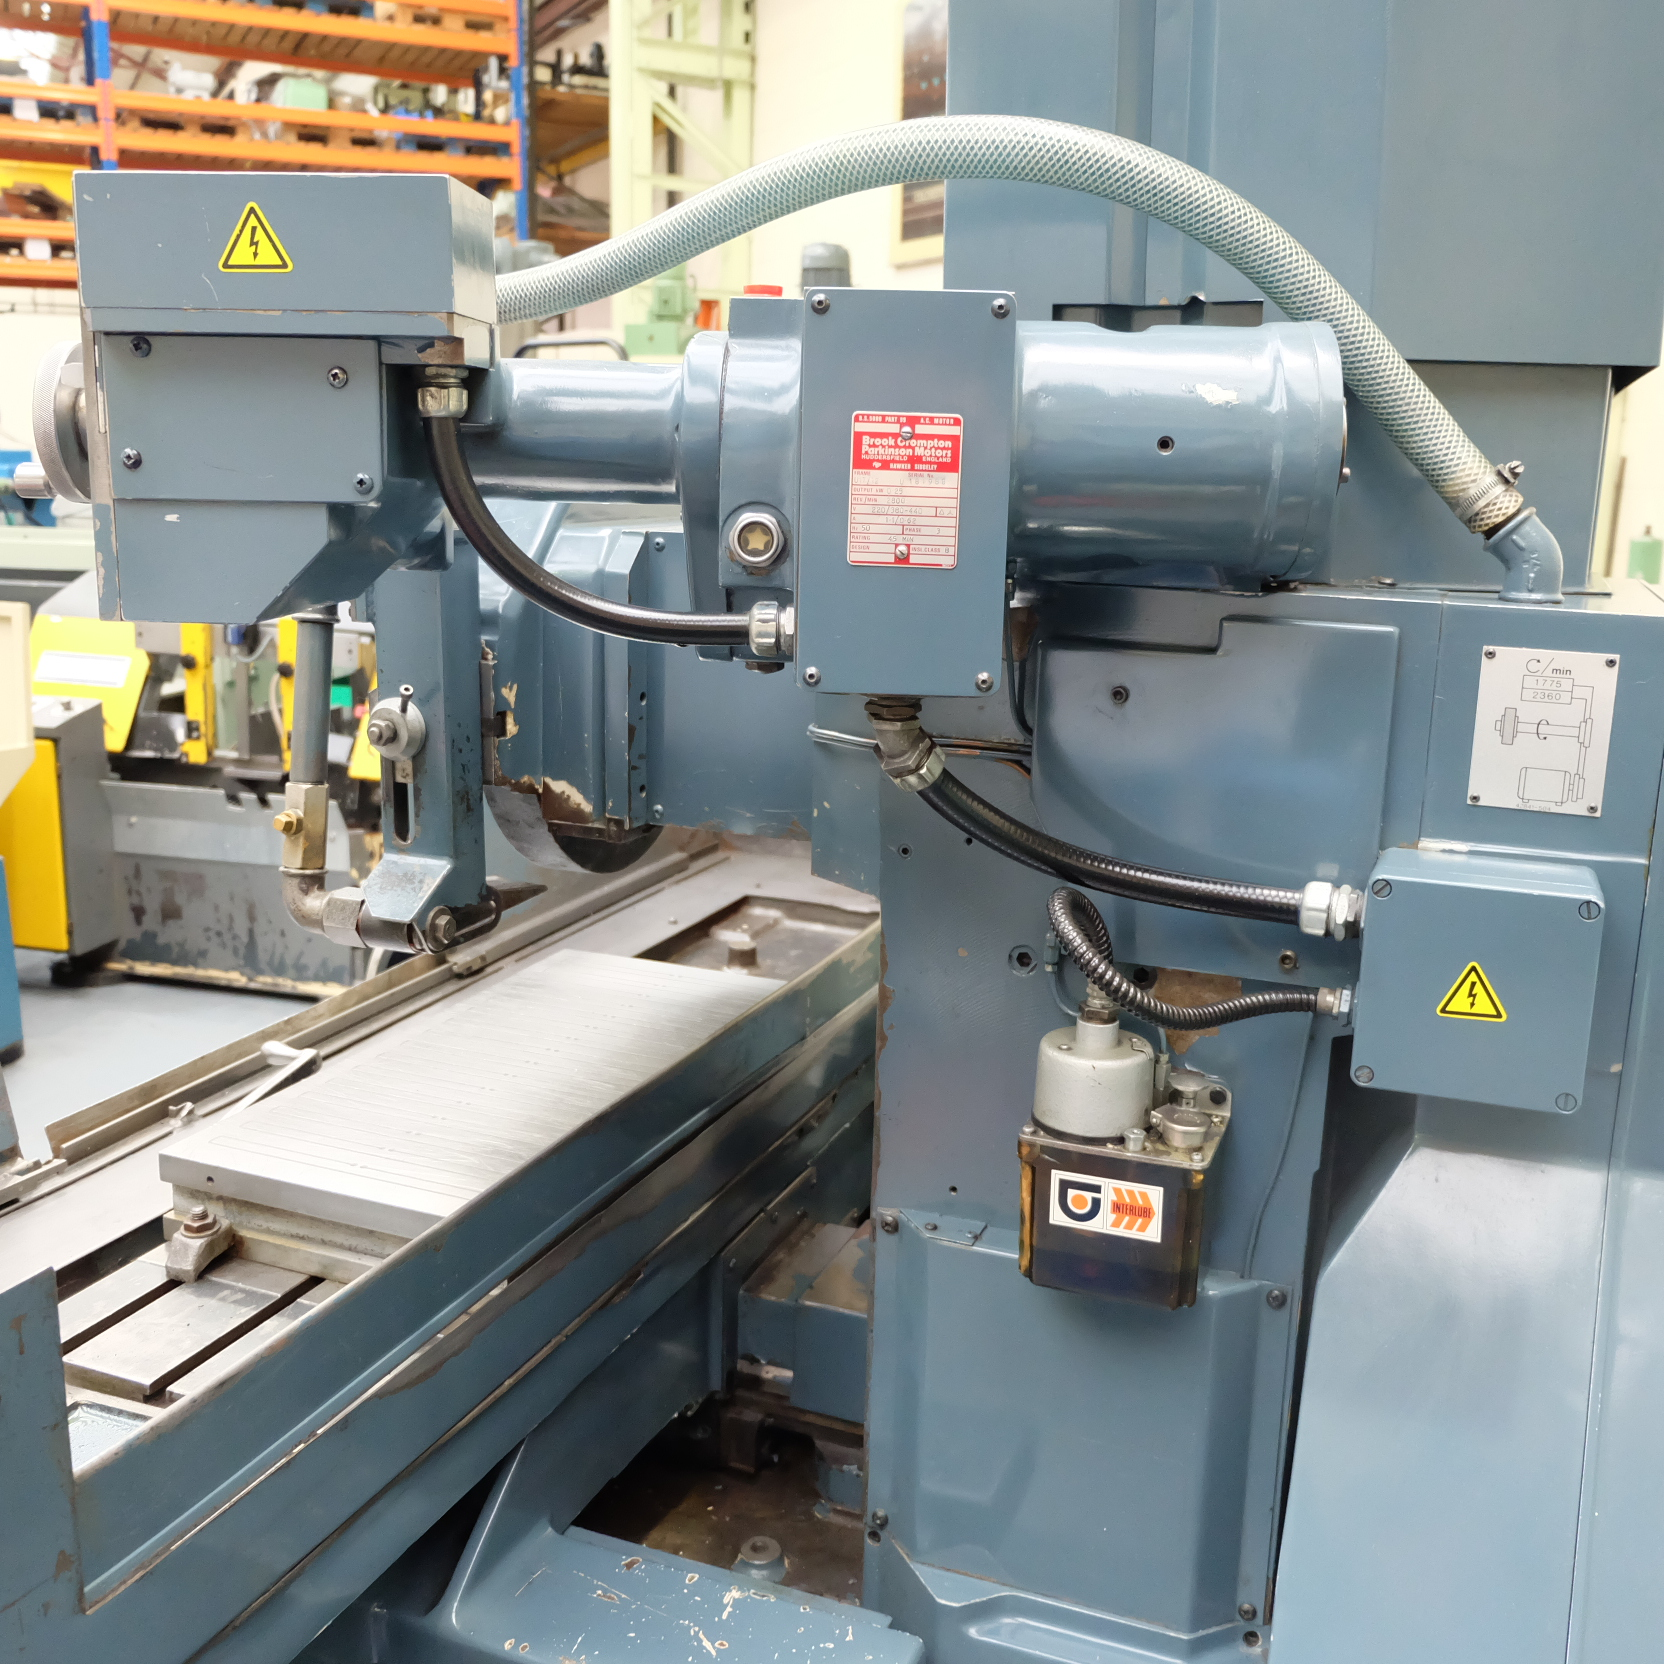 Jones & Shipman Type 1415 Toolroom Surface Grinder. With Magnetic Chuck & Coolant Tank. - Image 10 of 14